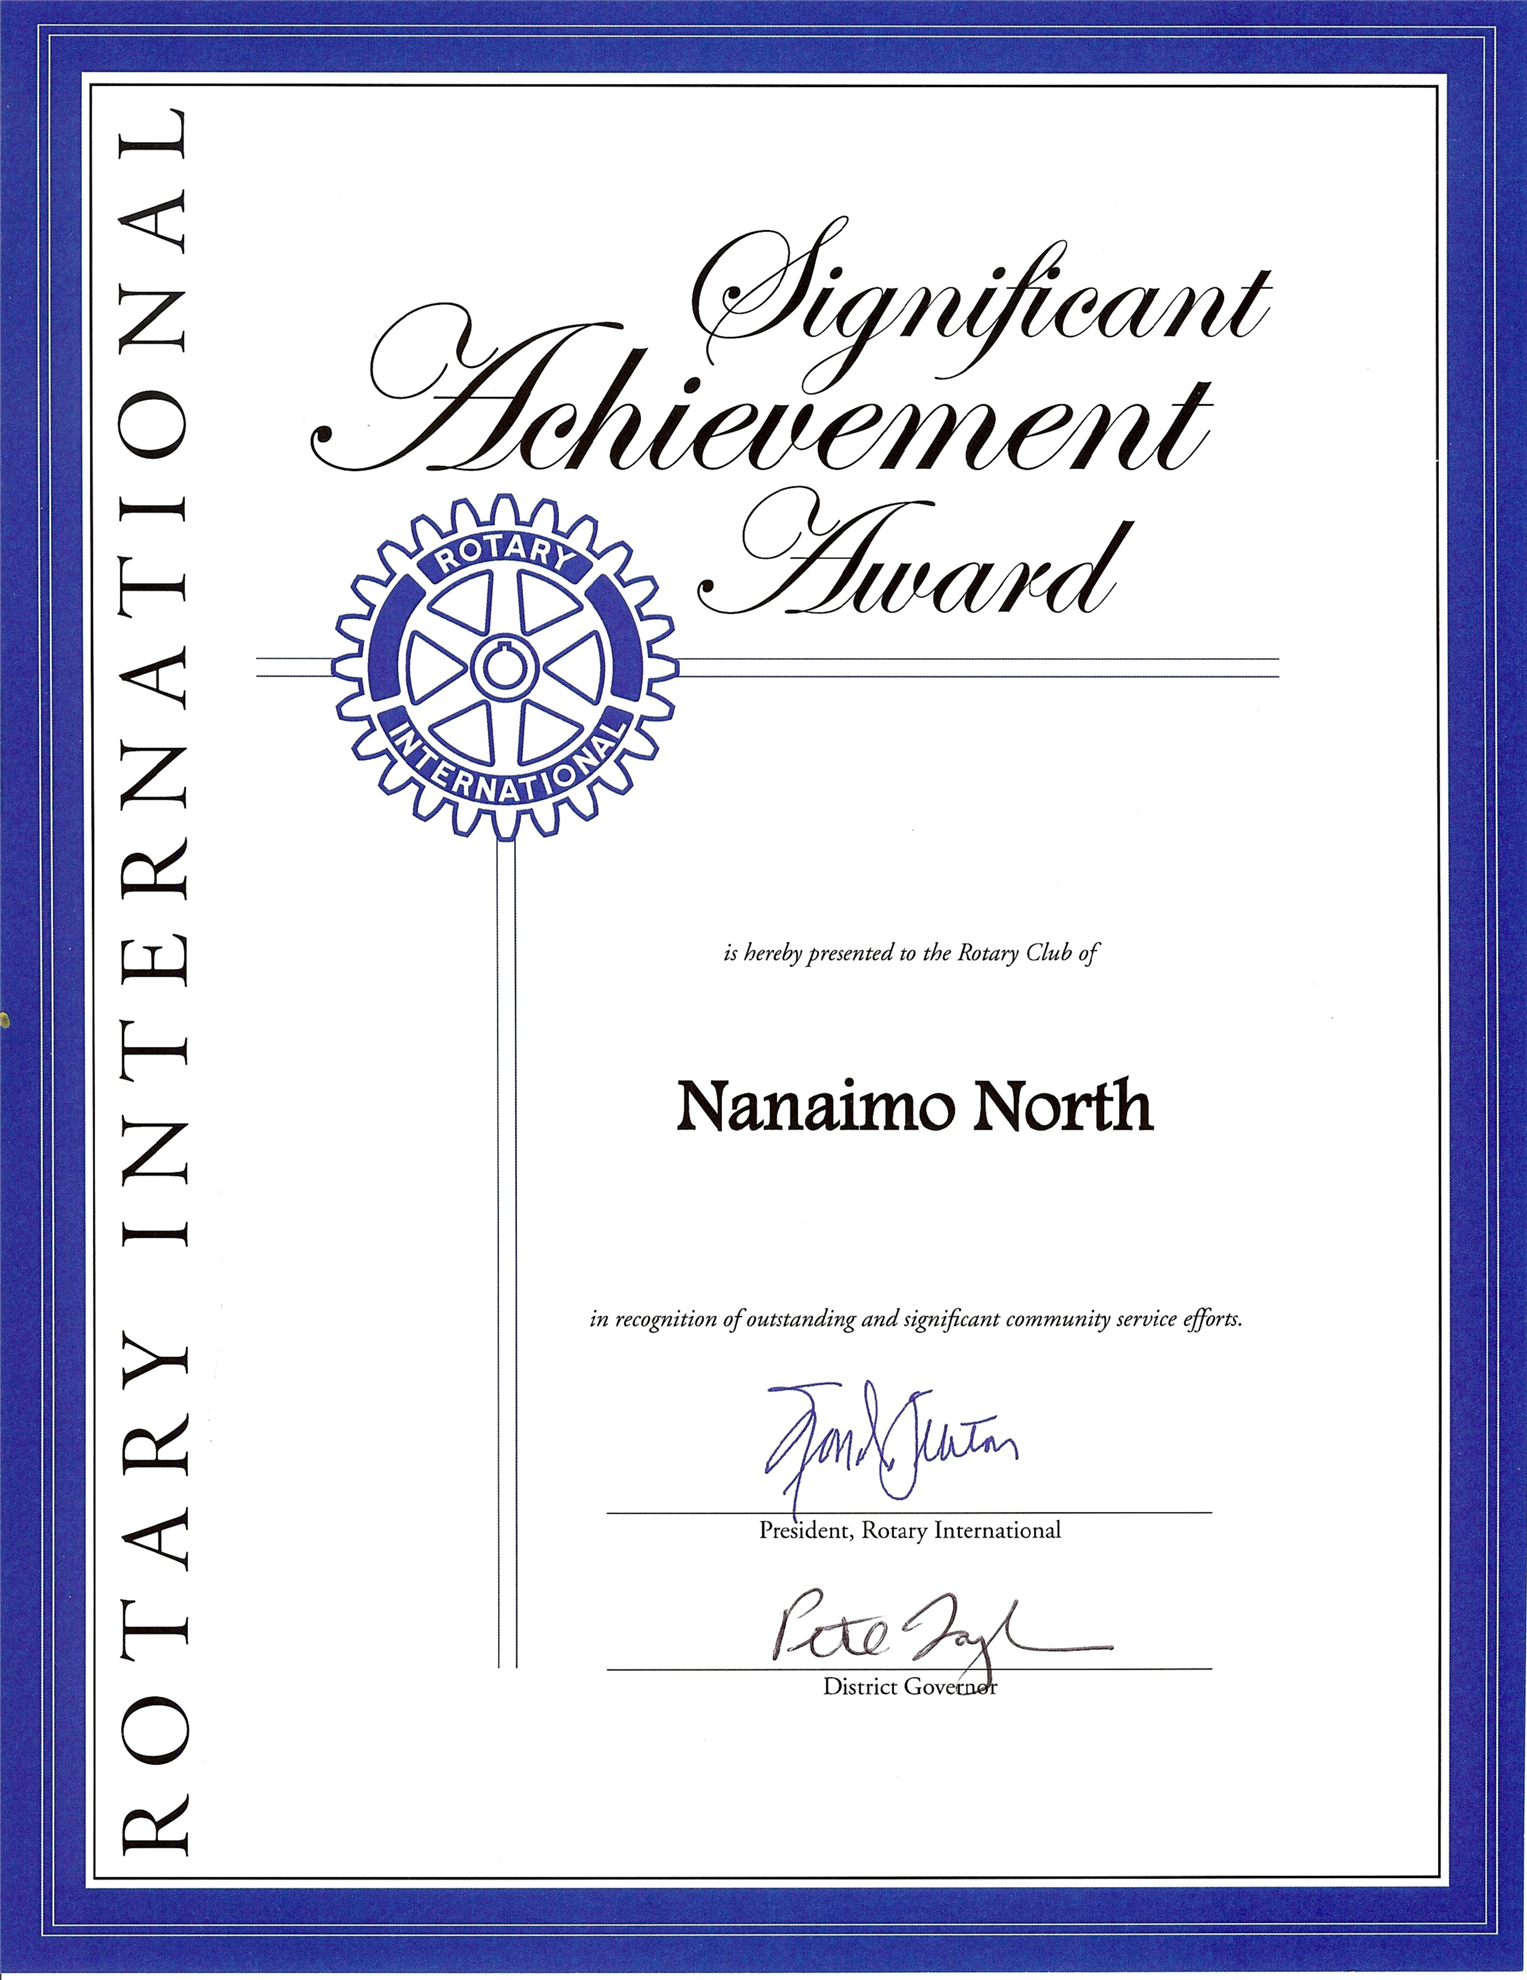 Club receives Rotary International Significant Achievement ...